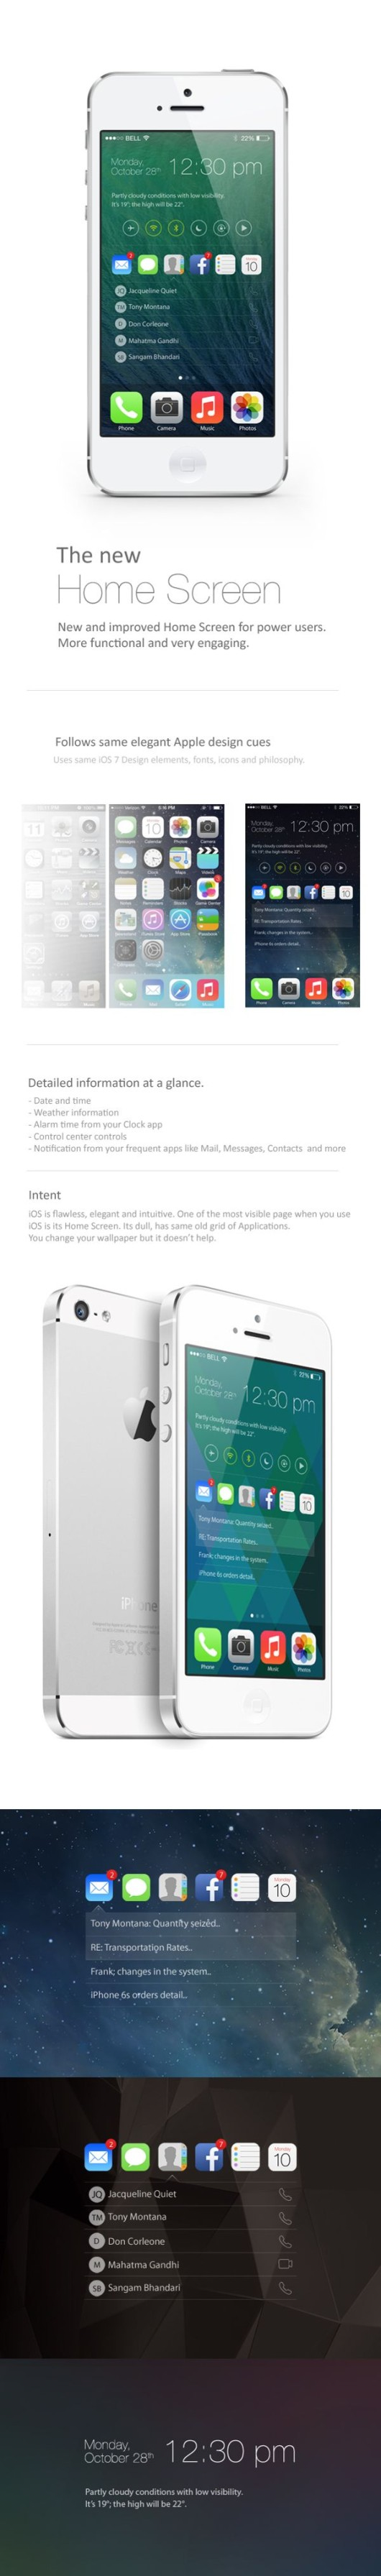 Apple iOS 8 preview-Info iDevice